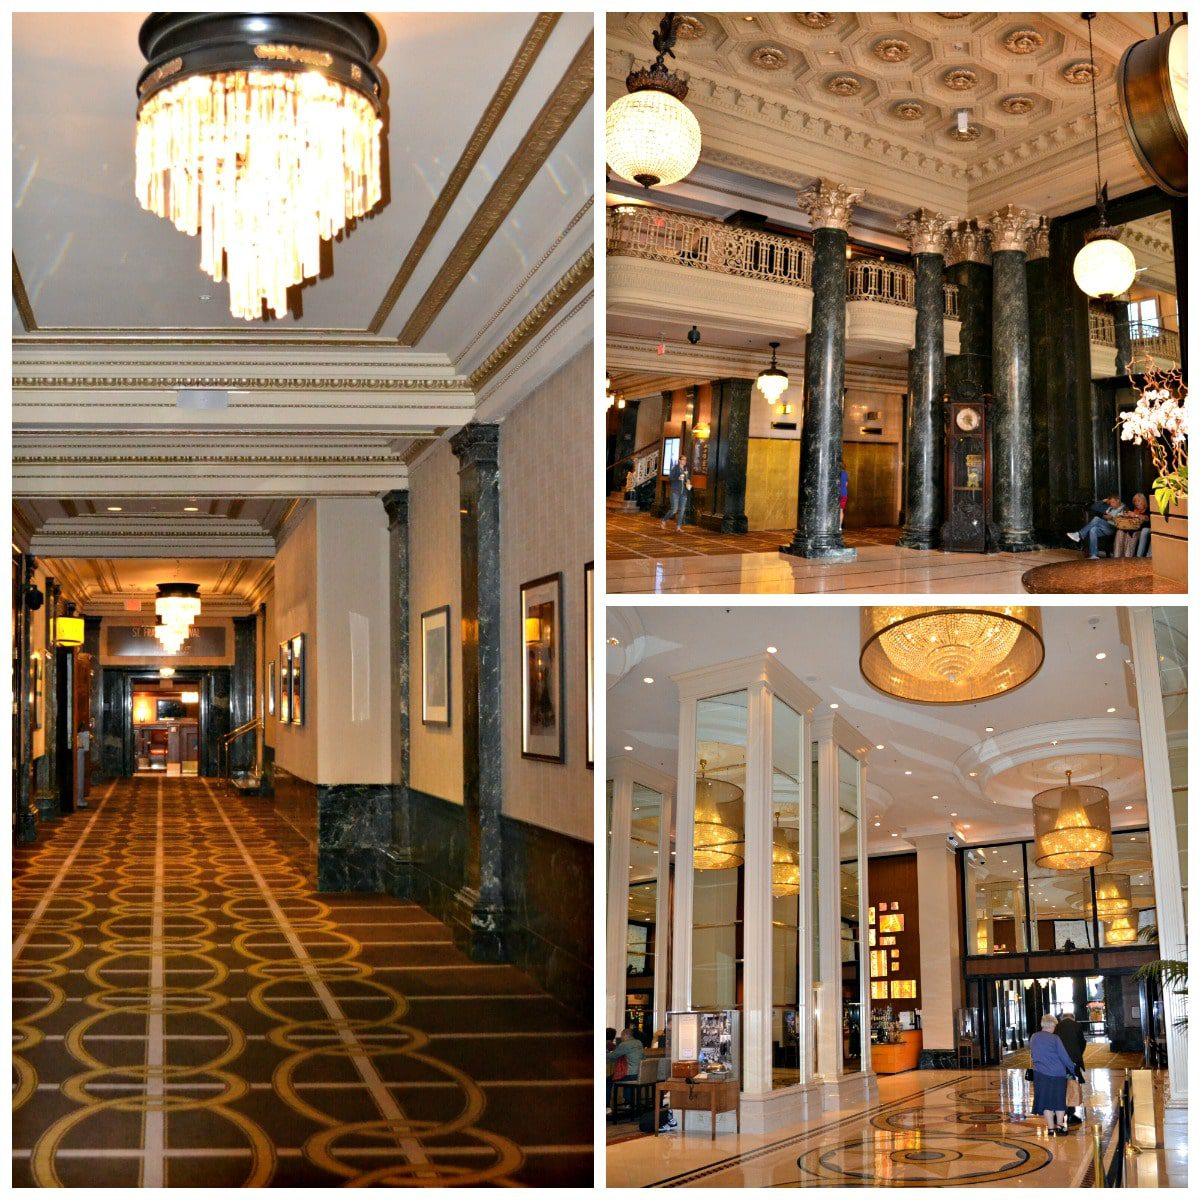 Historic hallways lined with photos of celebrity blend with the modern lobby